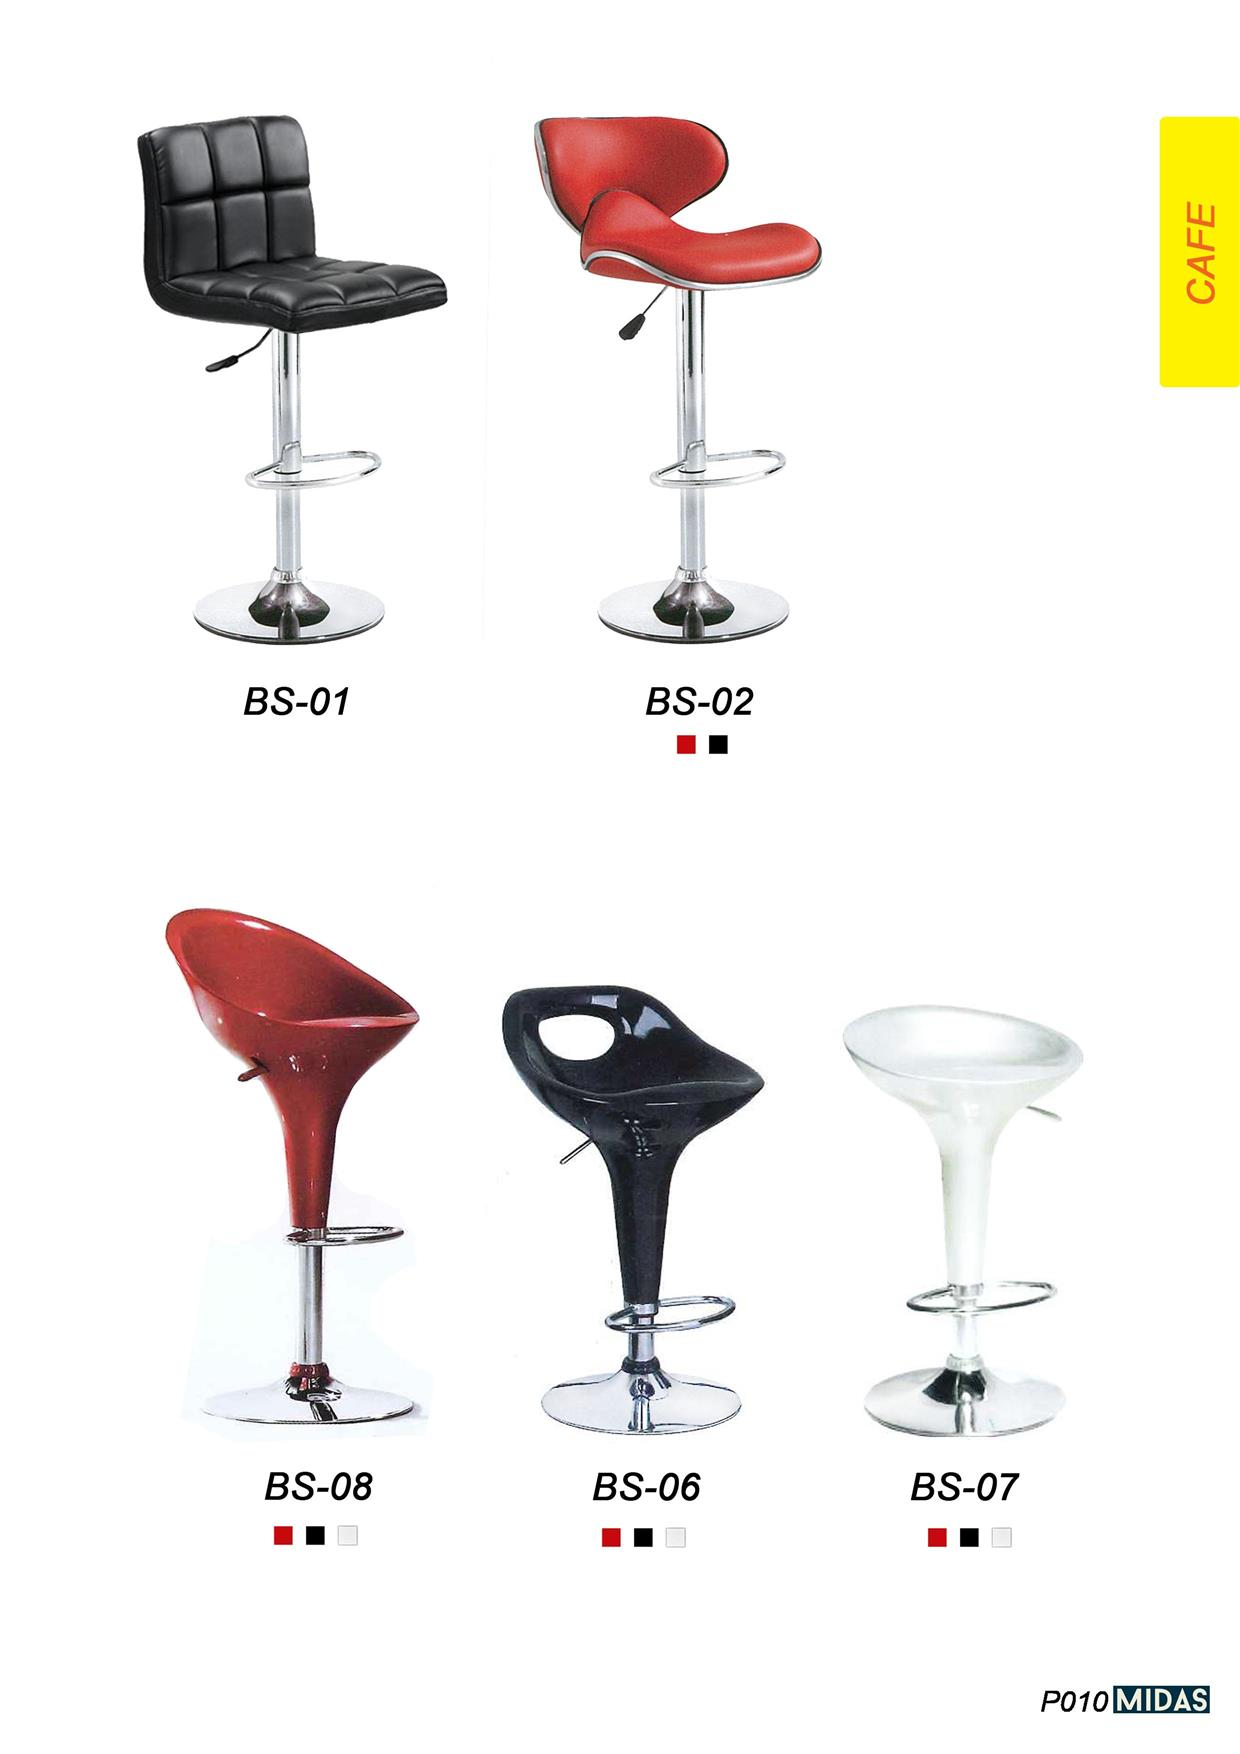 BS-01 HIGH ALUMINIUM ADJUSTABLE BAR CHAIR STOOL TABLE COFFEE SHOP